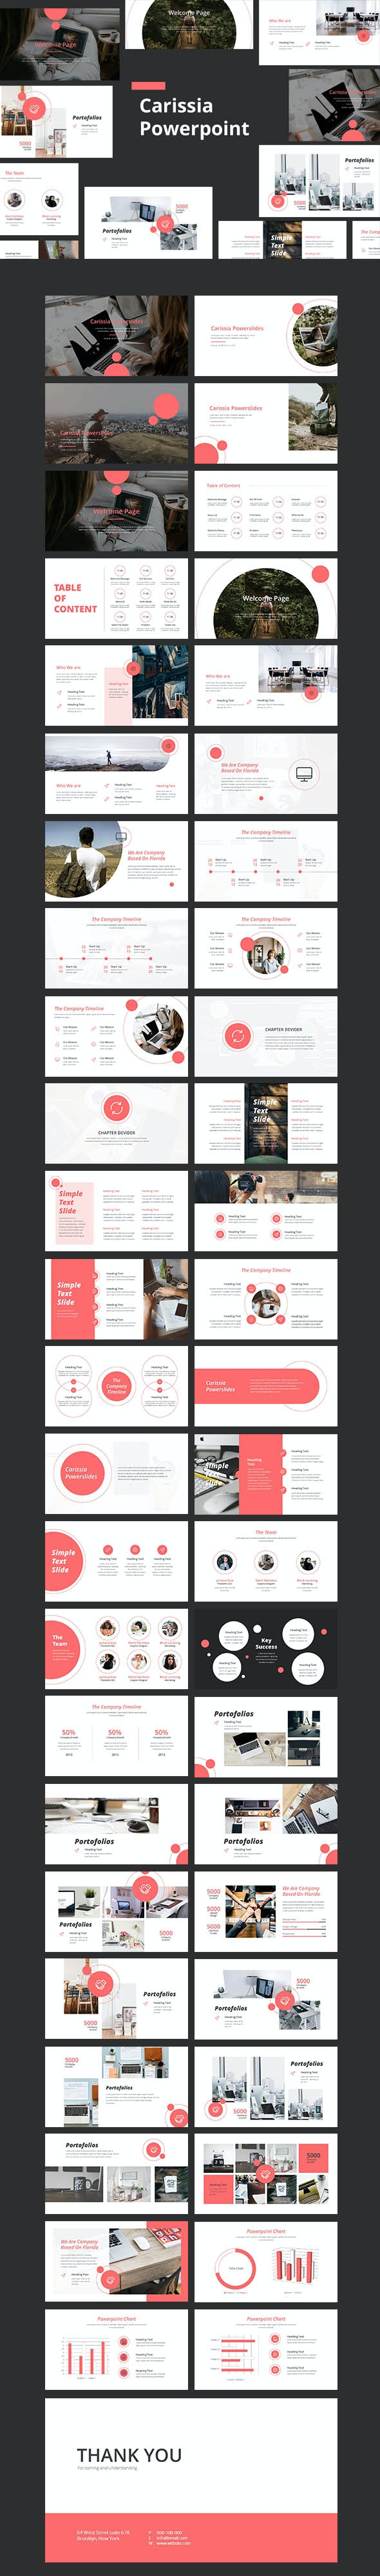 Carissia Powerpoint Templates - Creative PowerPoint Templates